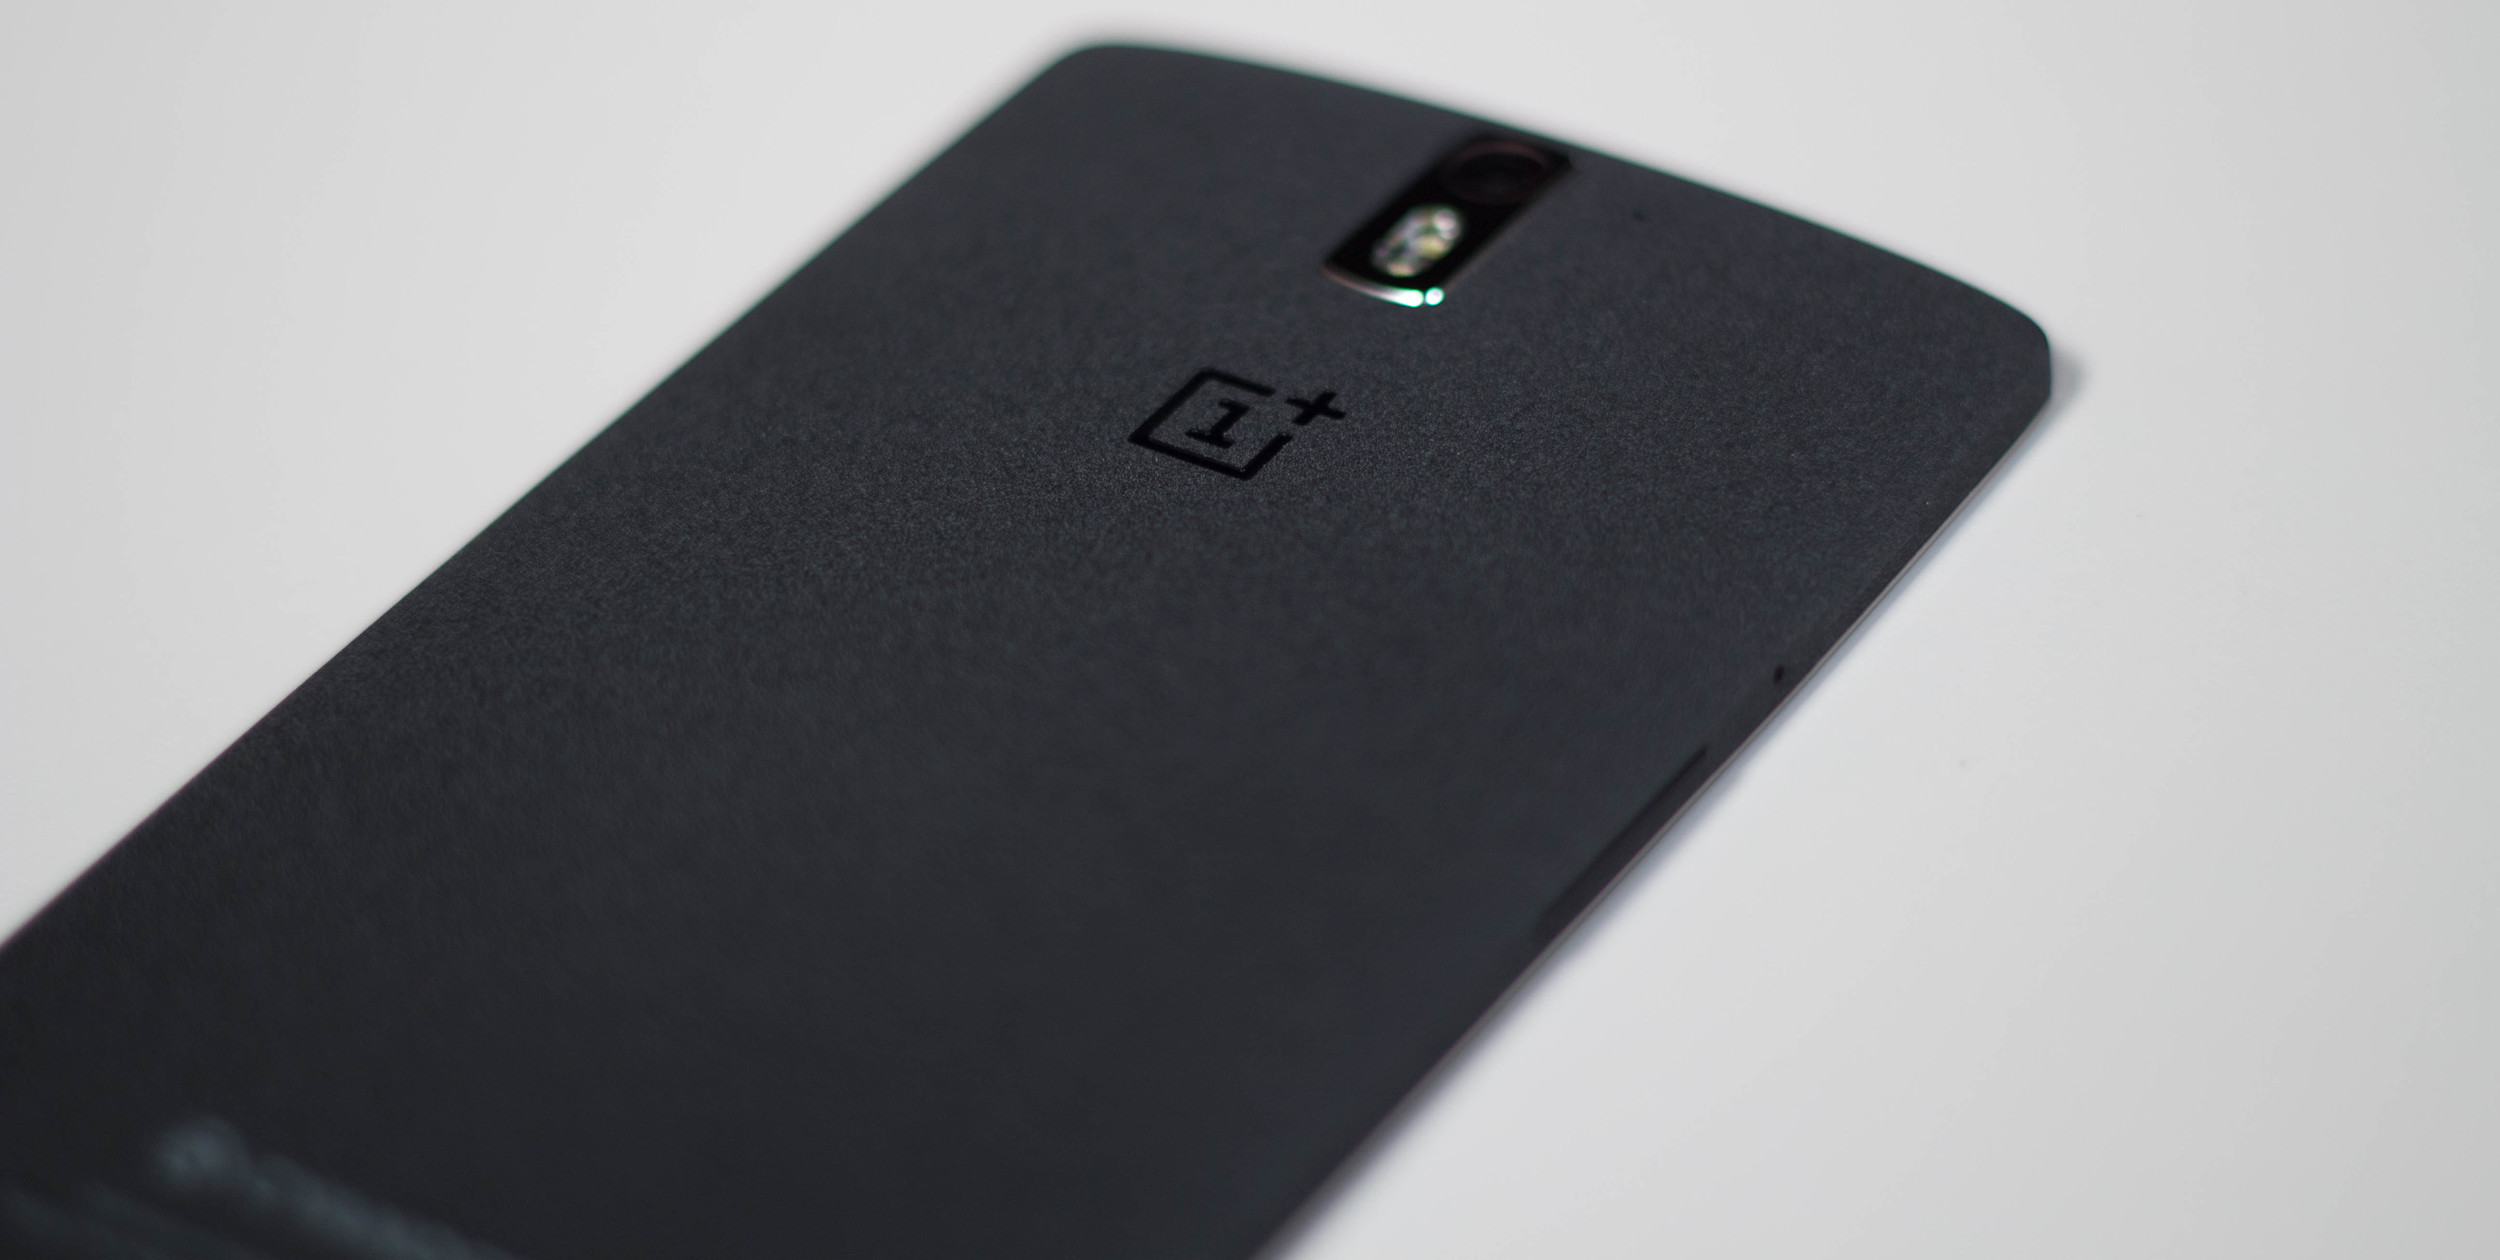 The Sandstone finish on the back of the 64 GB OnePlus One.